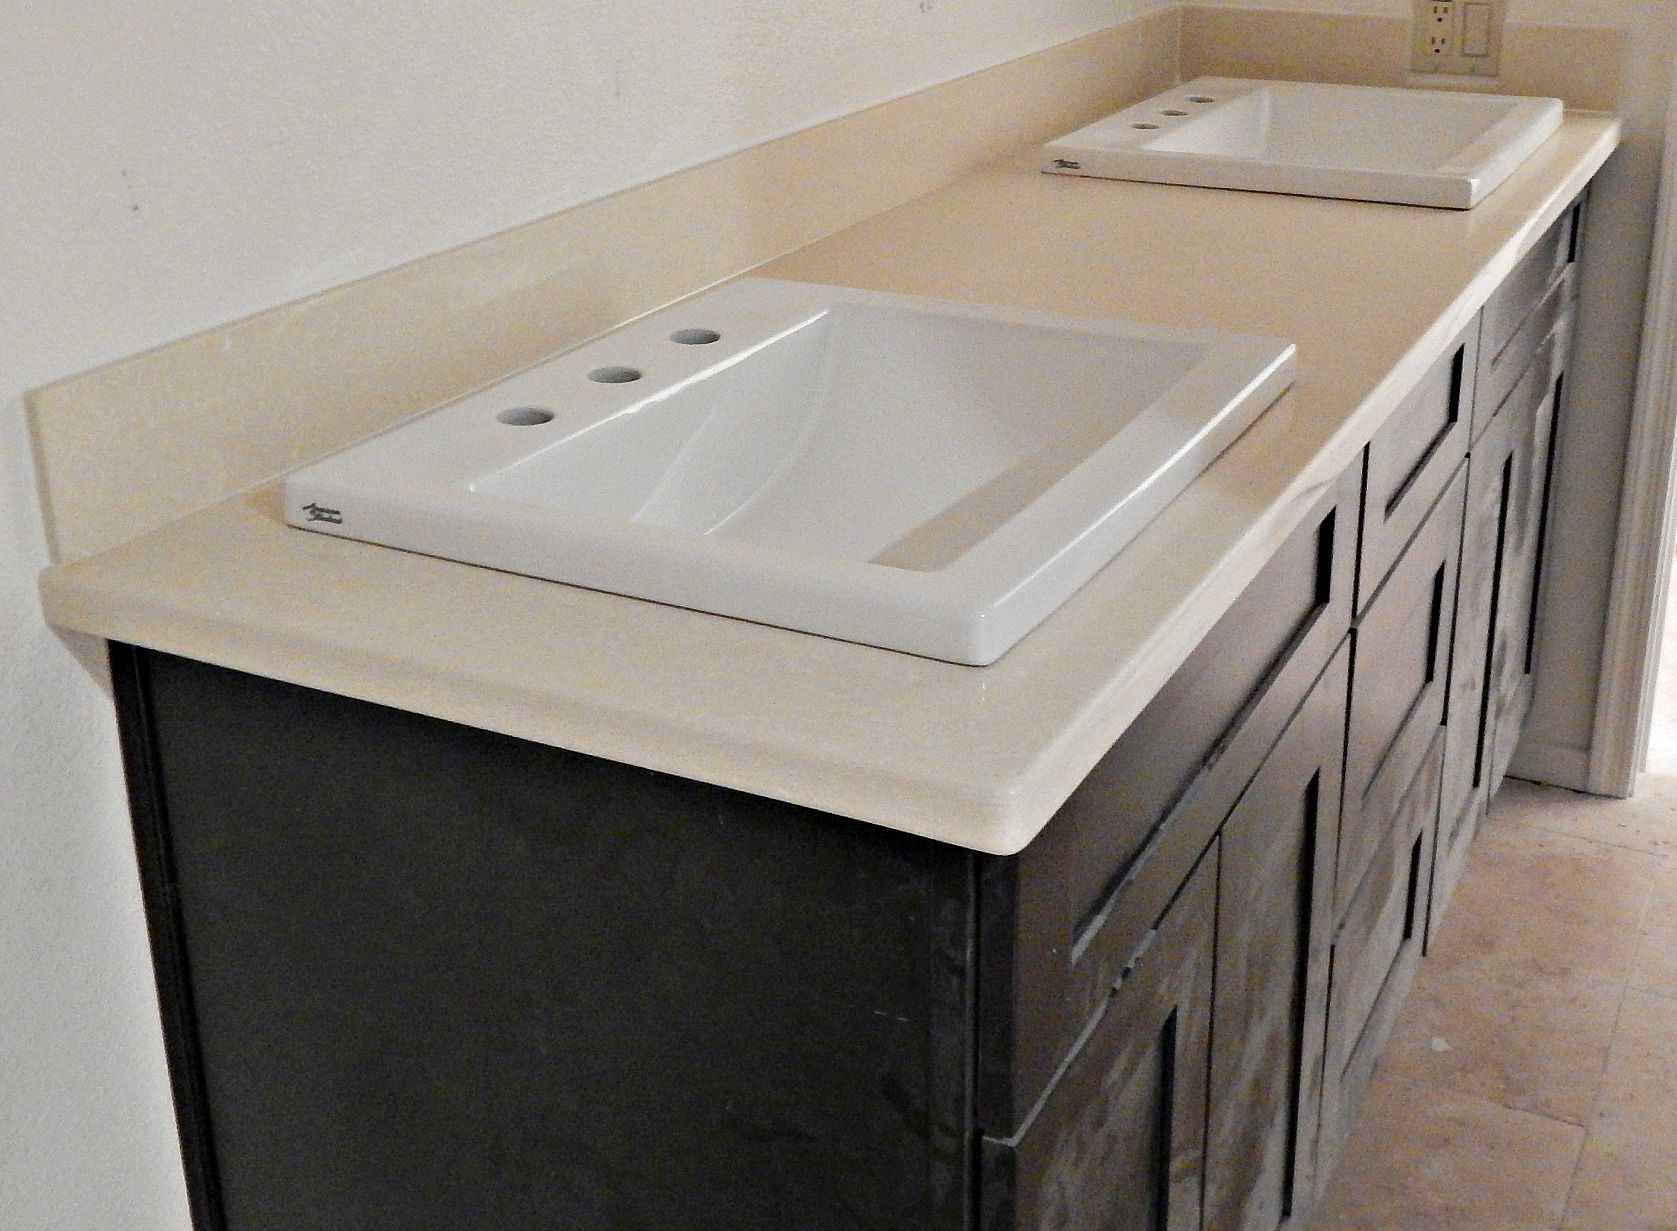 Silestone Haiku Quartz Countertop Remodel With Flat Polish Edge Top Mount Sinks And 4 Inch Standard Backsplashes